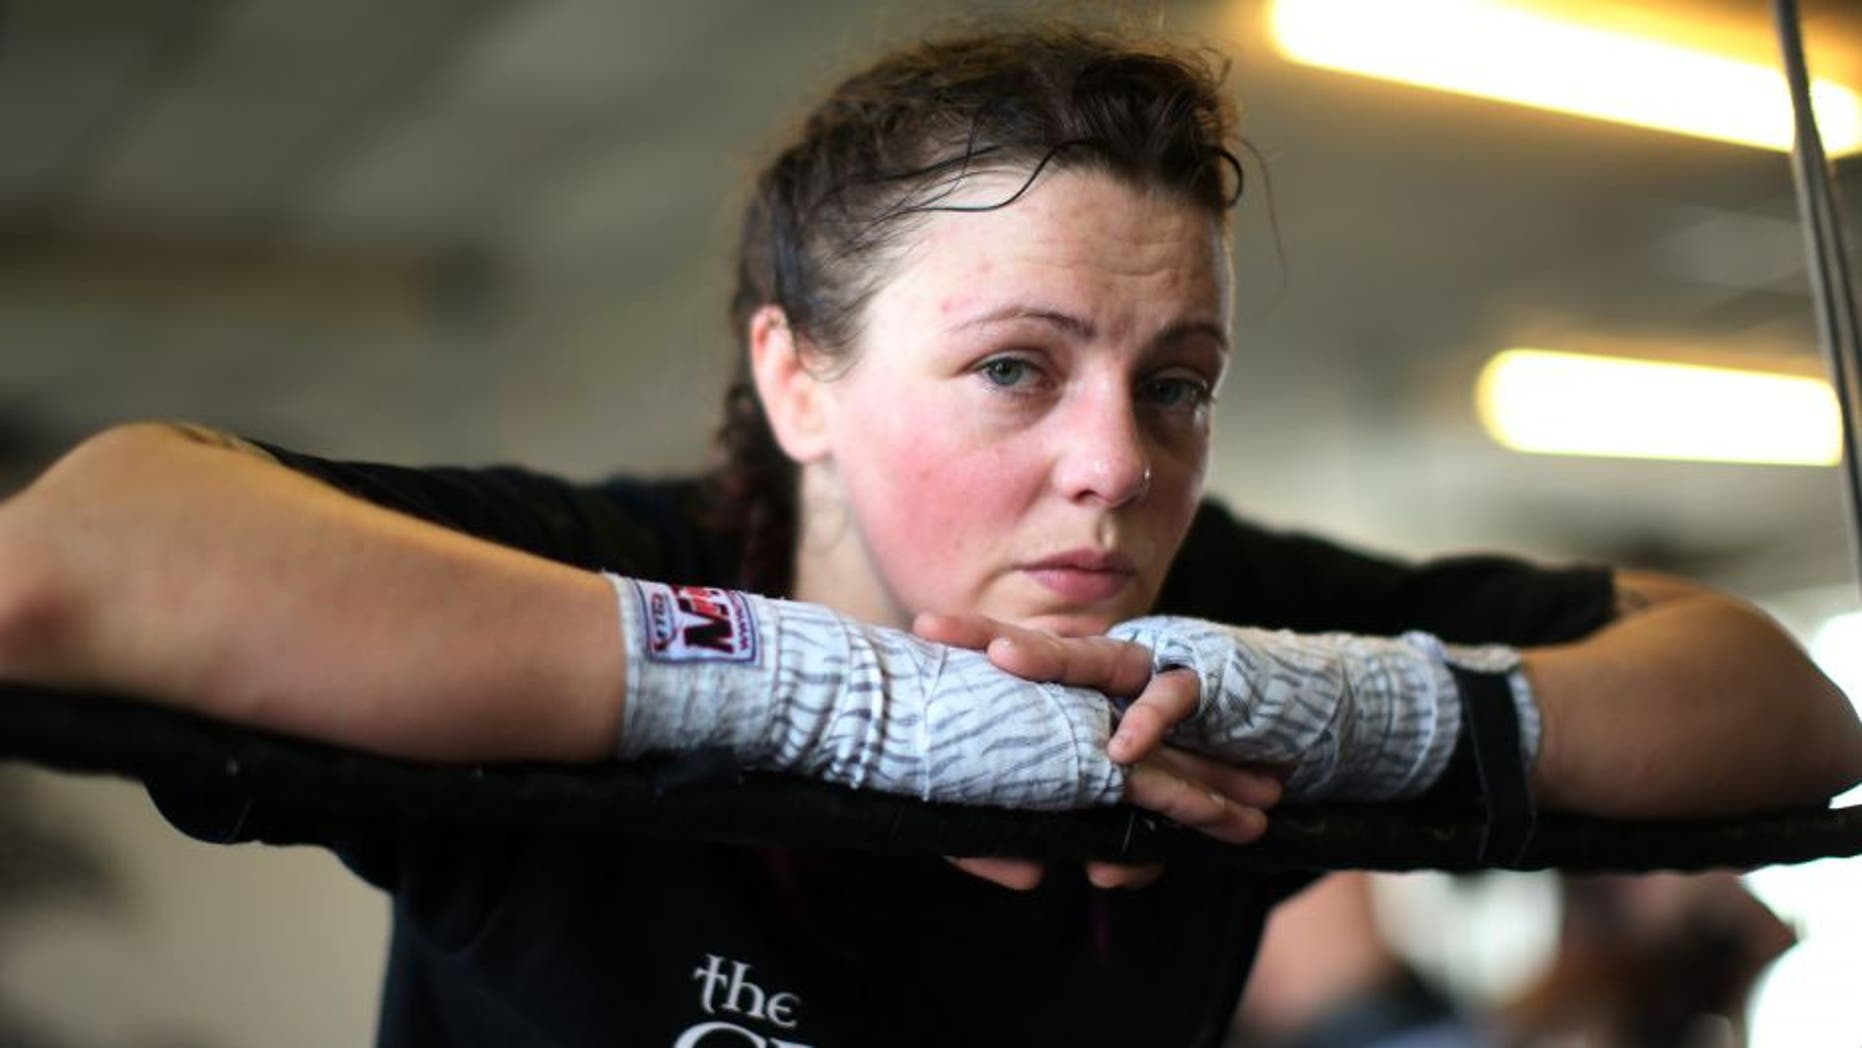 GLASGOW, SCOTLAND - MAY 28: Joanne Calderwood poses at the Grip House Gym on May 28, 2015 Glasgow, Scotland. (Photo by Ian MacNicol/Zuffa LLC via Getty Images)